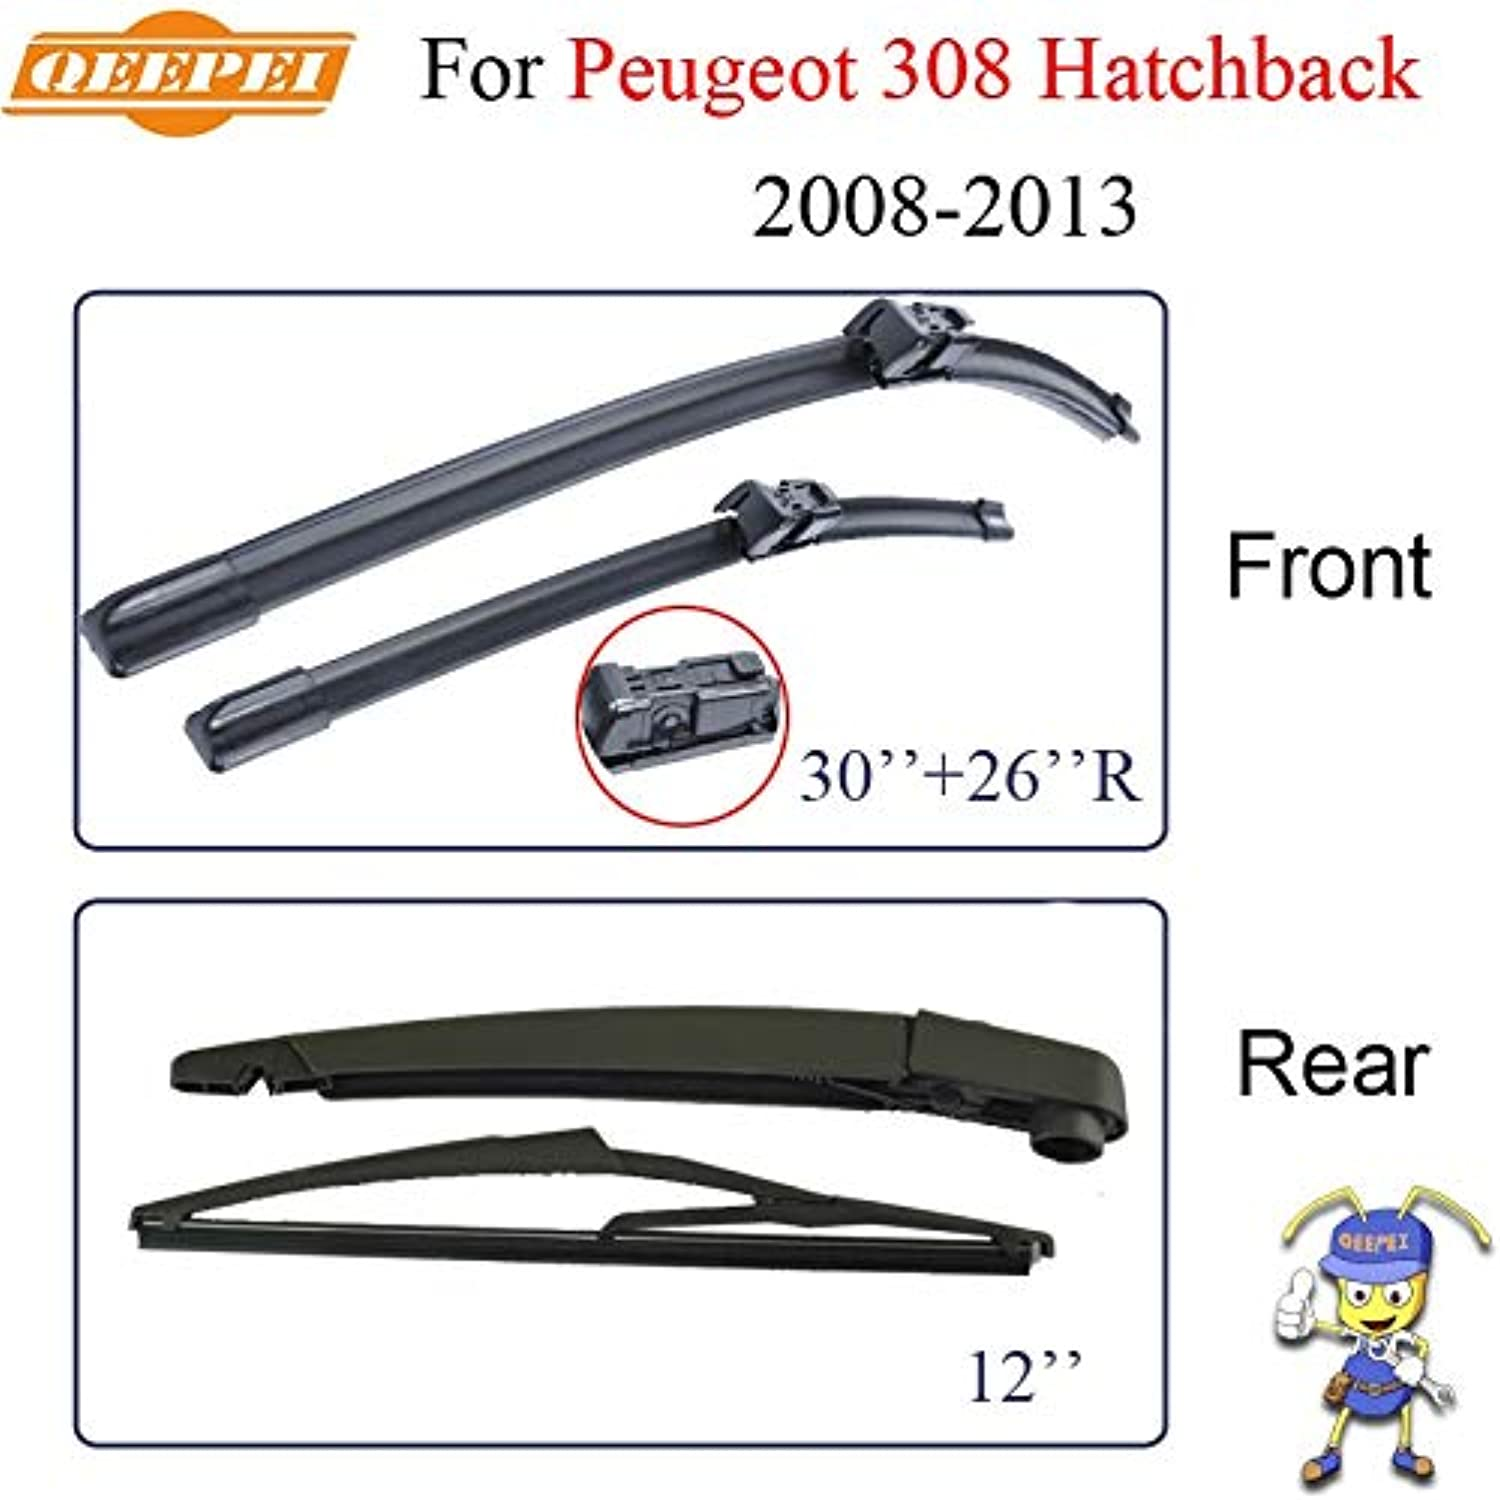 Wipers Wiper Blades for Peugeot 308 Hatchback 20082013 Nature Rubber Windscreen Car Brush Accessories Auto Parts Cpc11804